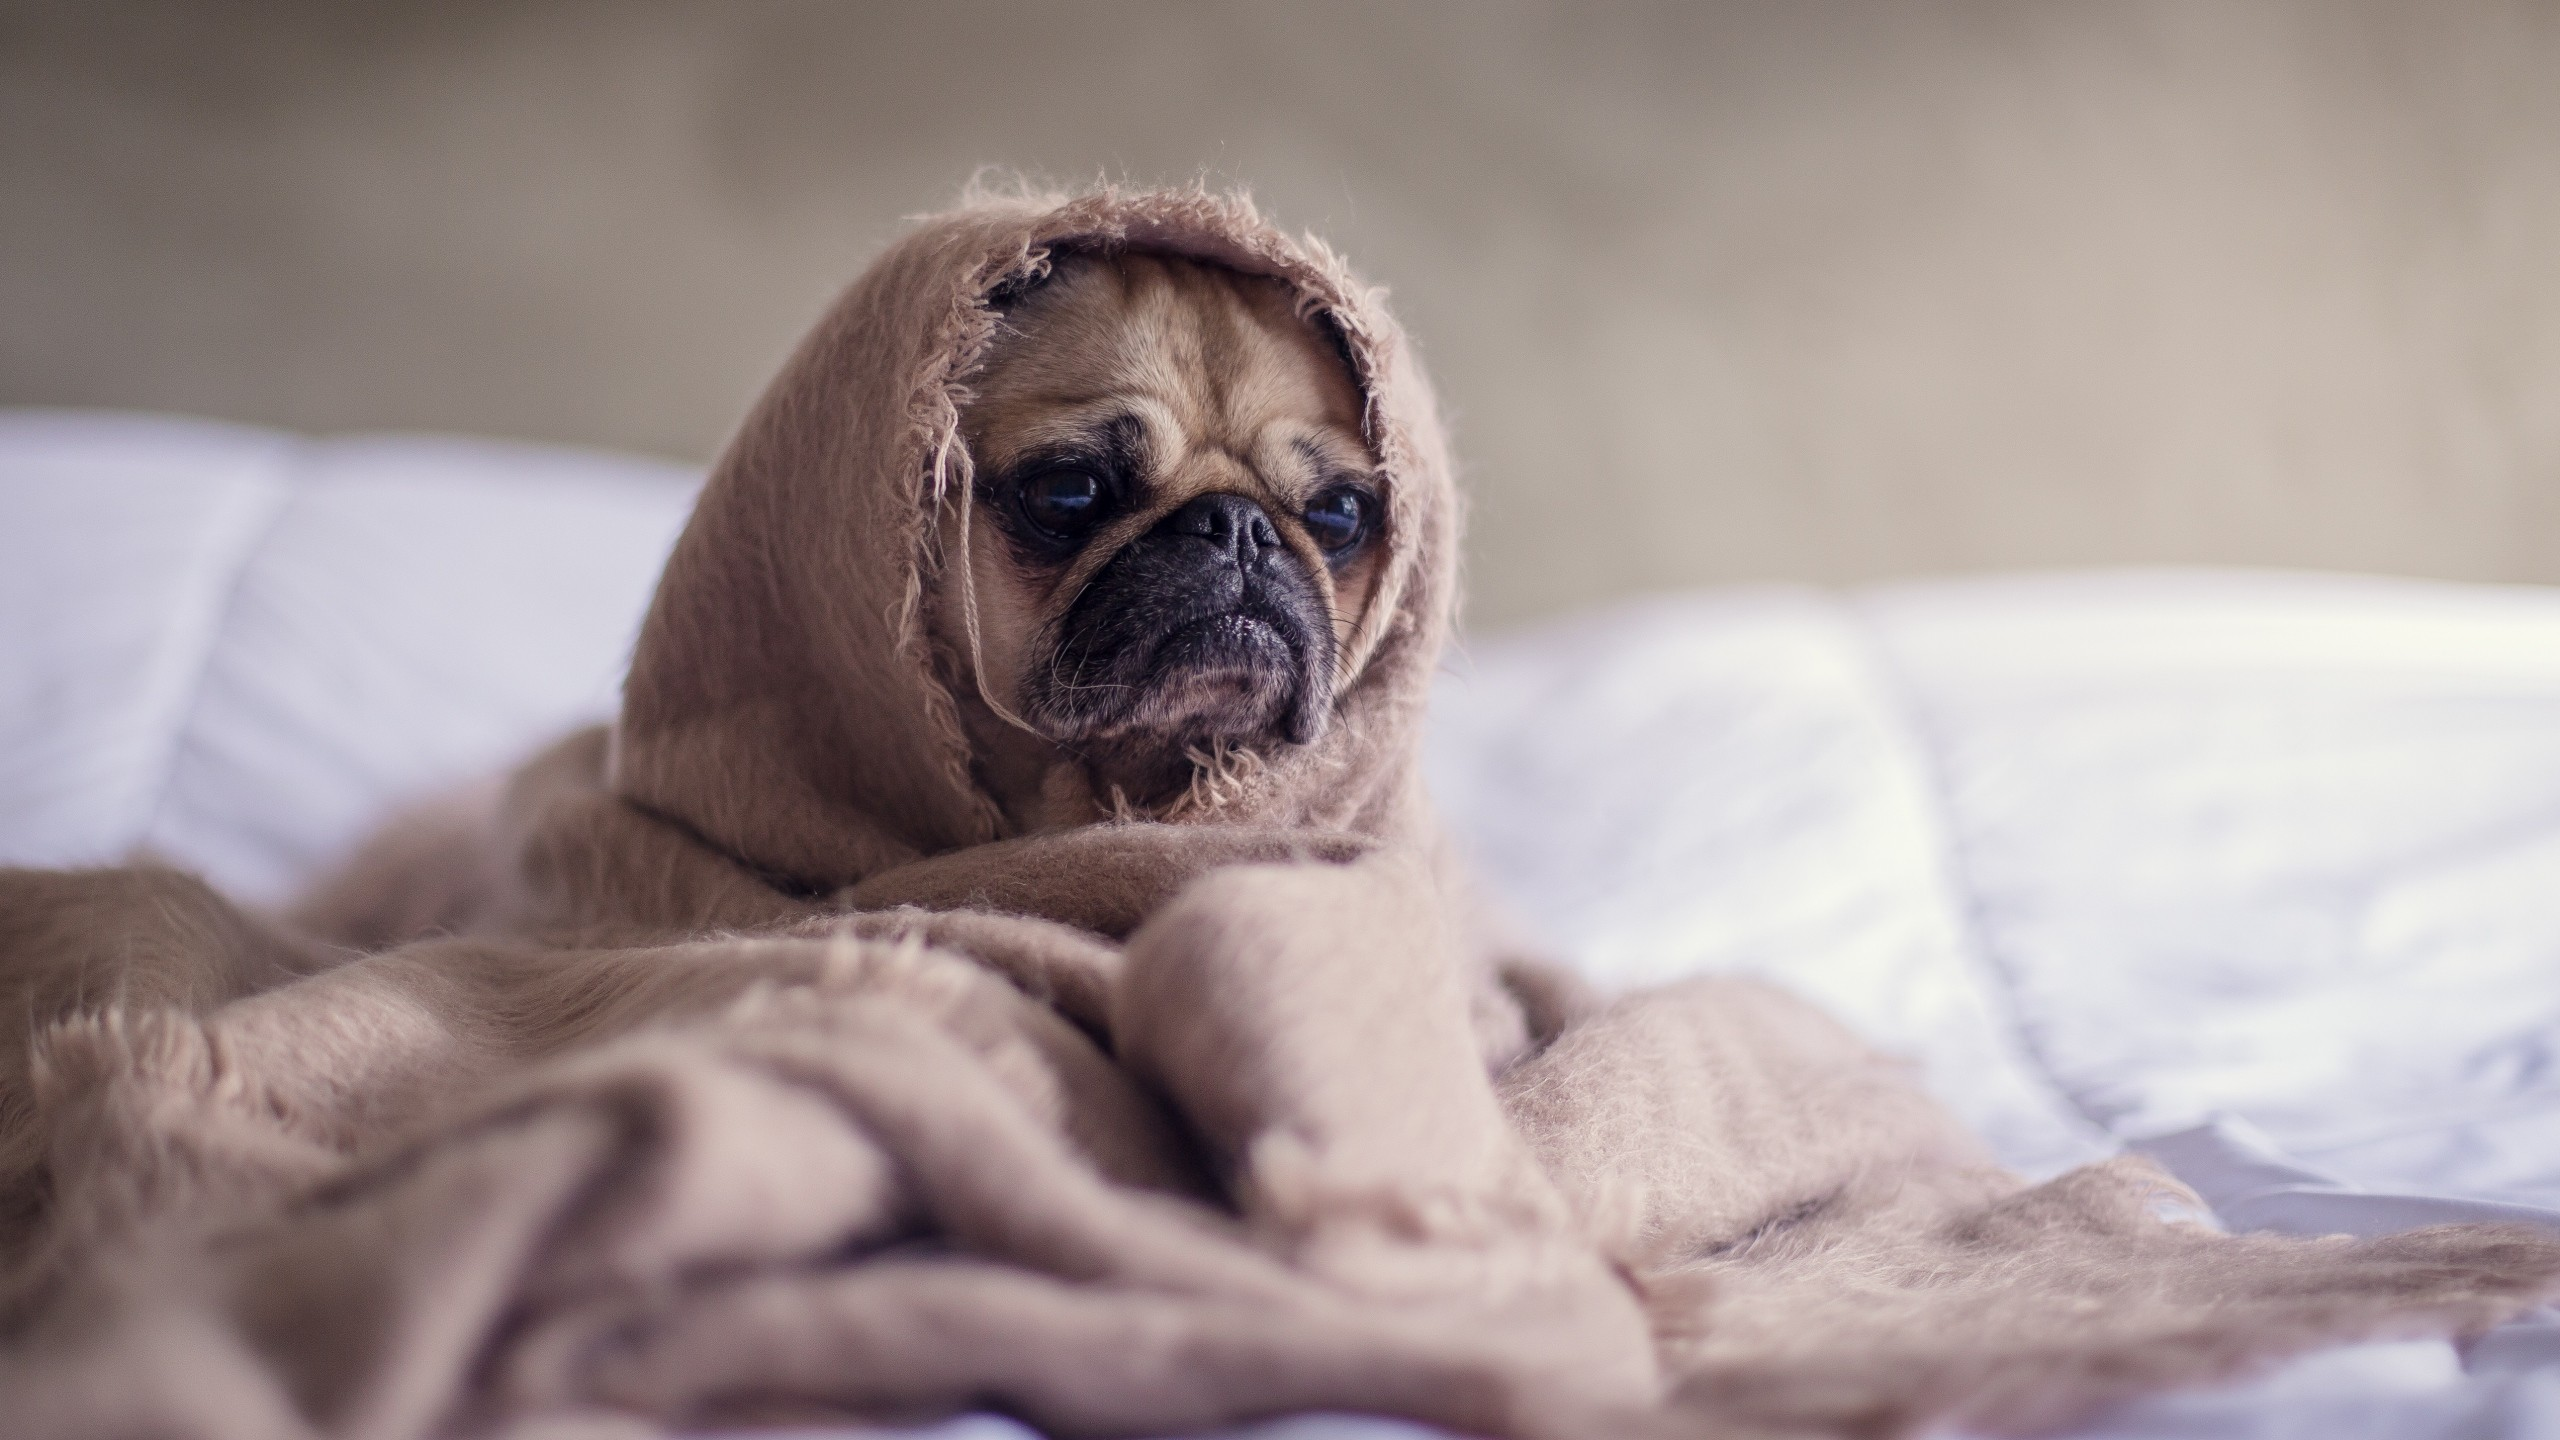 2560x1440 Preview wallpaper pug, dog, blanket